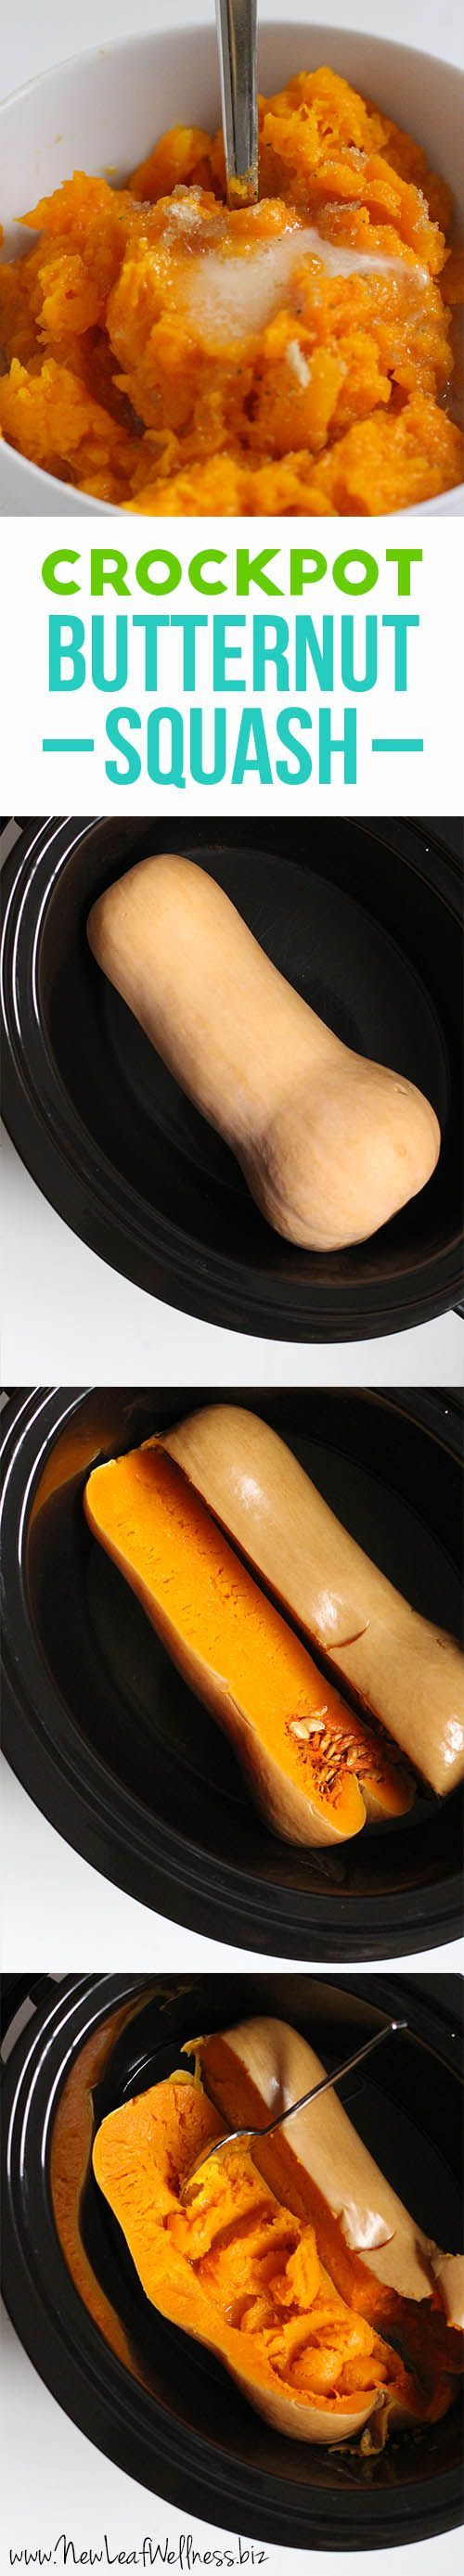 Crockpot Butternut Squash.  This is so ridiculously easy, why didn't I think of this before?!  A healthy, delicious way to prepare a perfect Fall food!